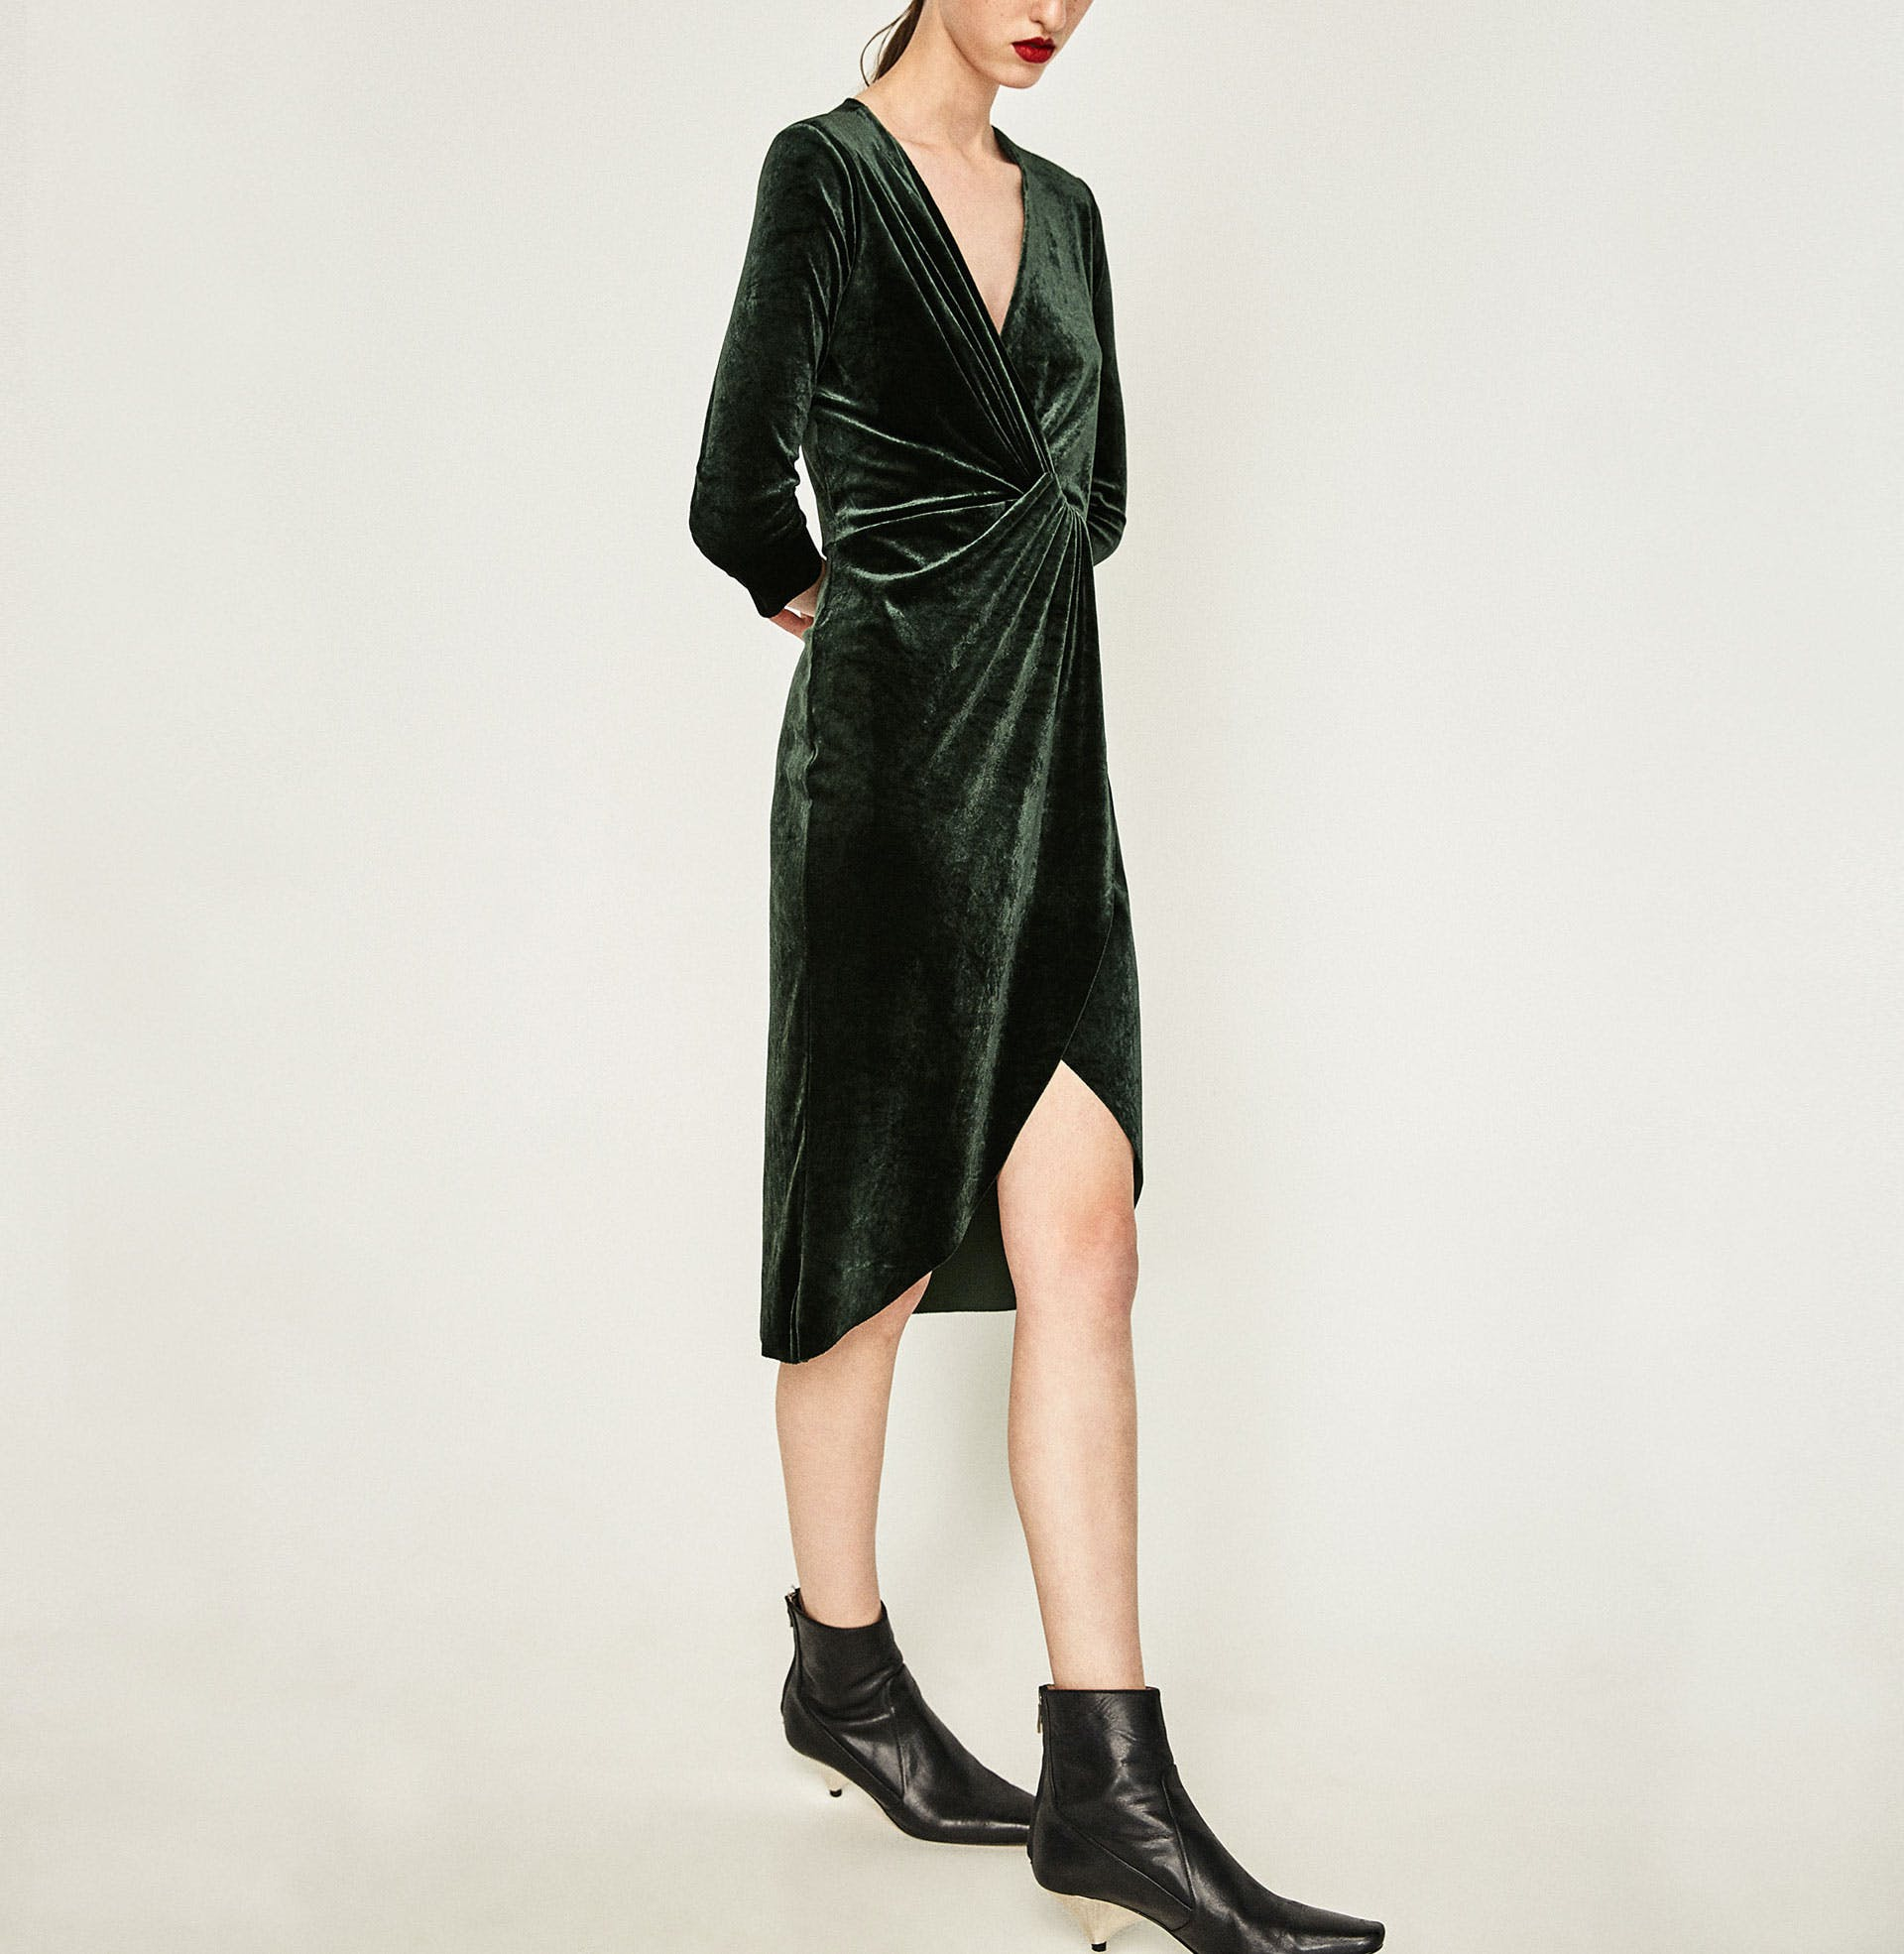 dallas what to buy at zara 7 velvet dress